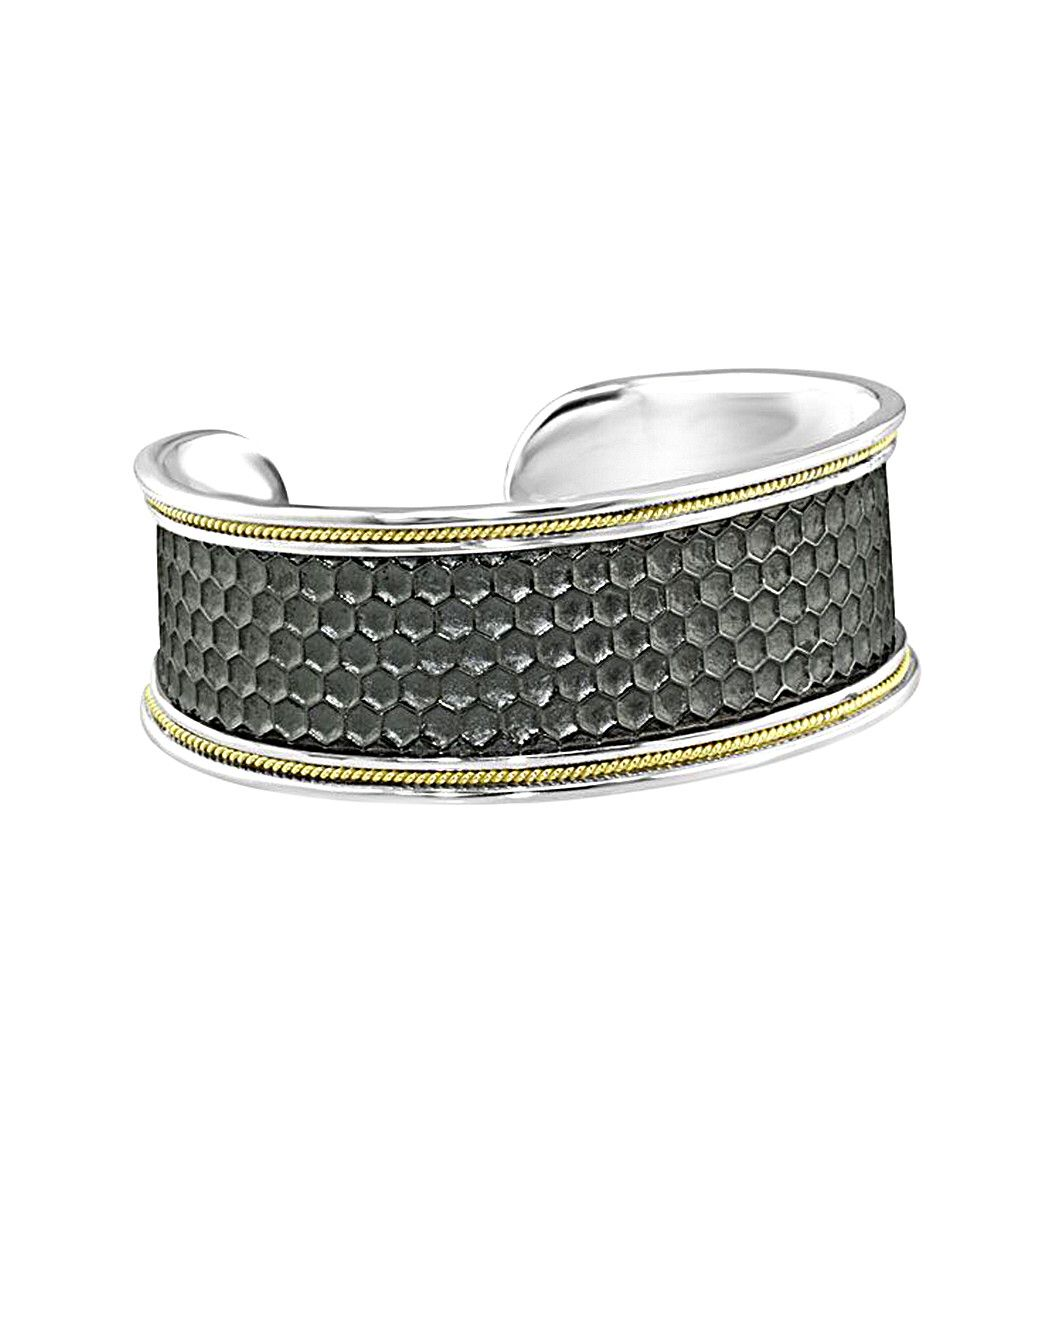 You need to see this Eli Jewels Honey 18K & Silver Bangle on Rue La La.  Get in and shop (quickly!): https://www.ruelala.com/boutique/product/102692/32088148?inv=nlinscombe&aid=6191